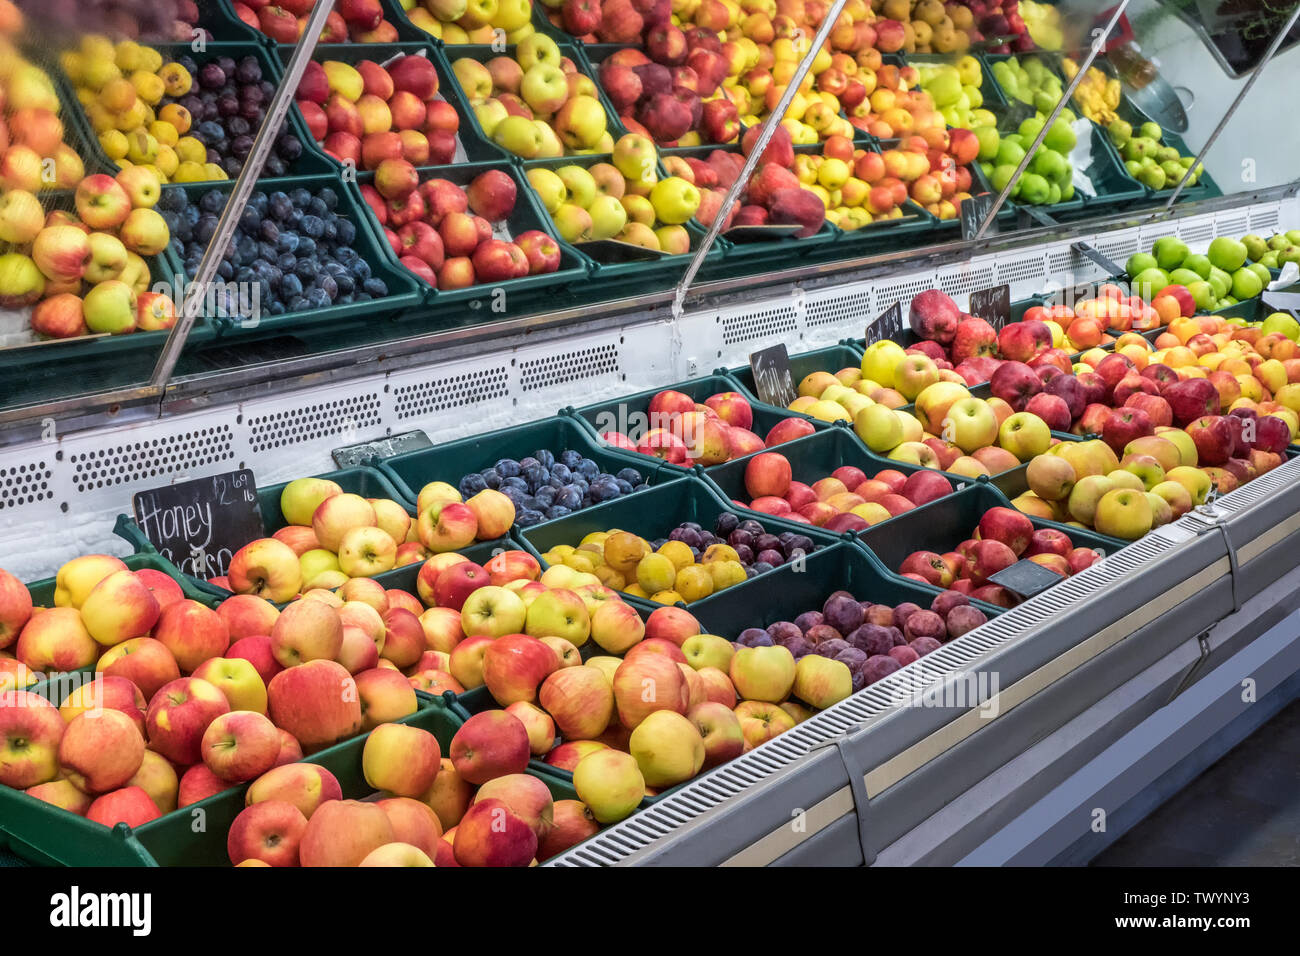 Wenatchee, Washington, USA.  Refrigerated display case of freshly harvested locally grown apples for sale at a produce stand. - Stock Image